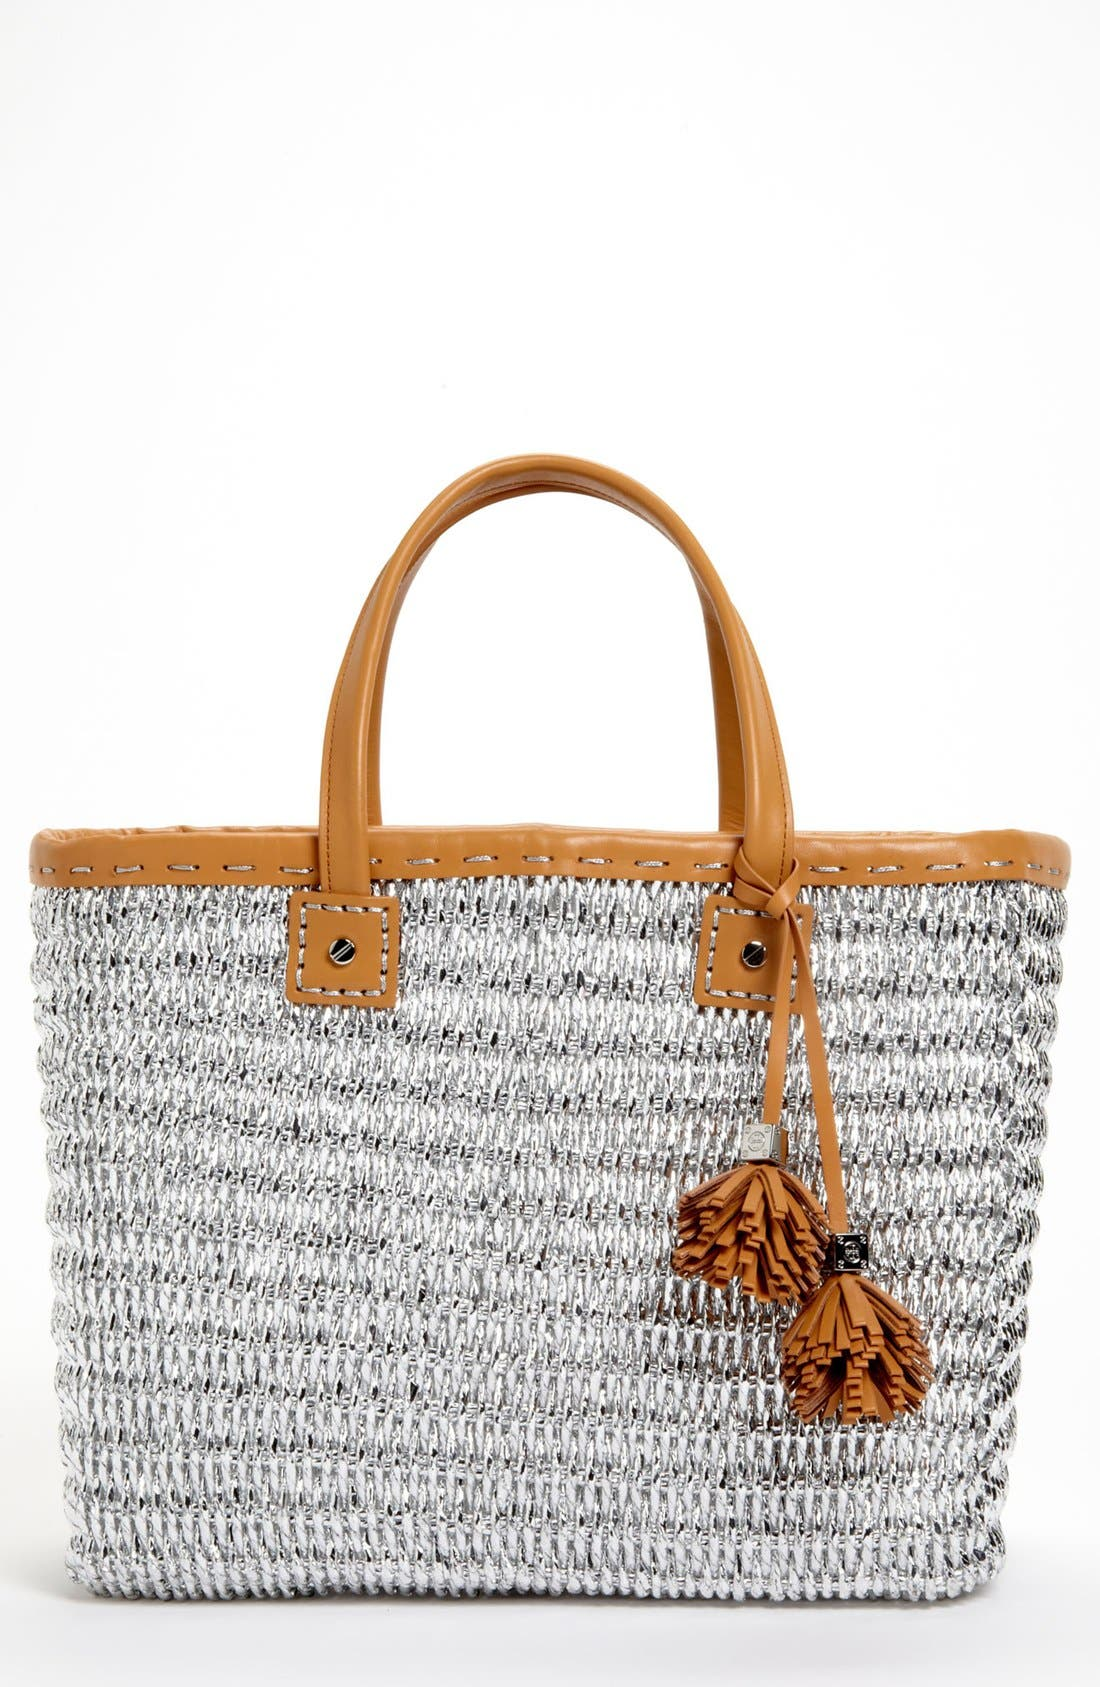 Alternate Image 1 Selected - Tory Burch Metallic Straw Tote, Large